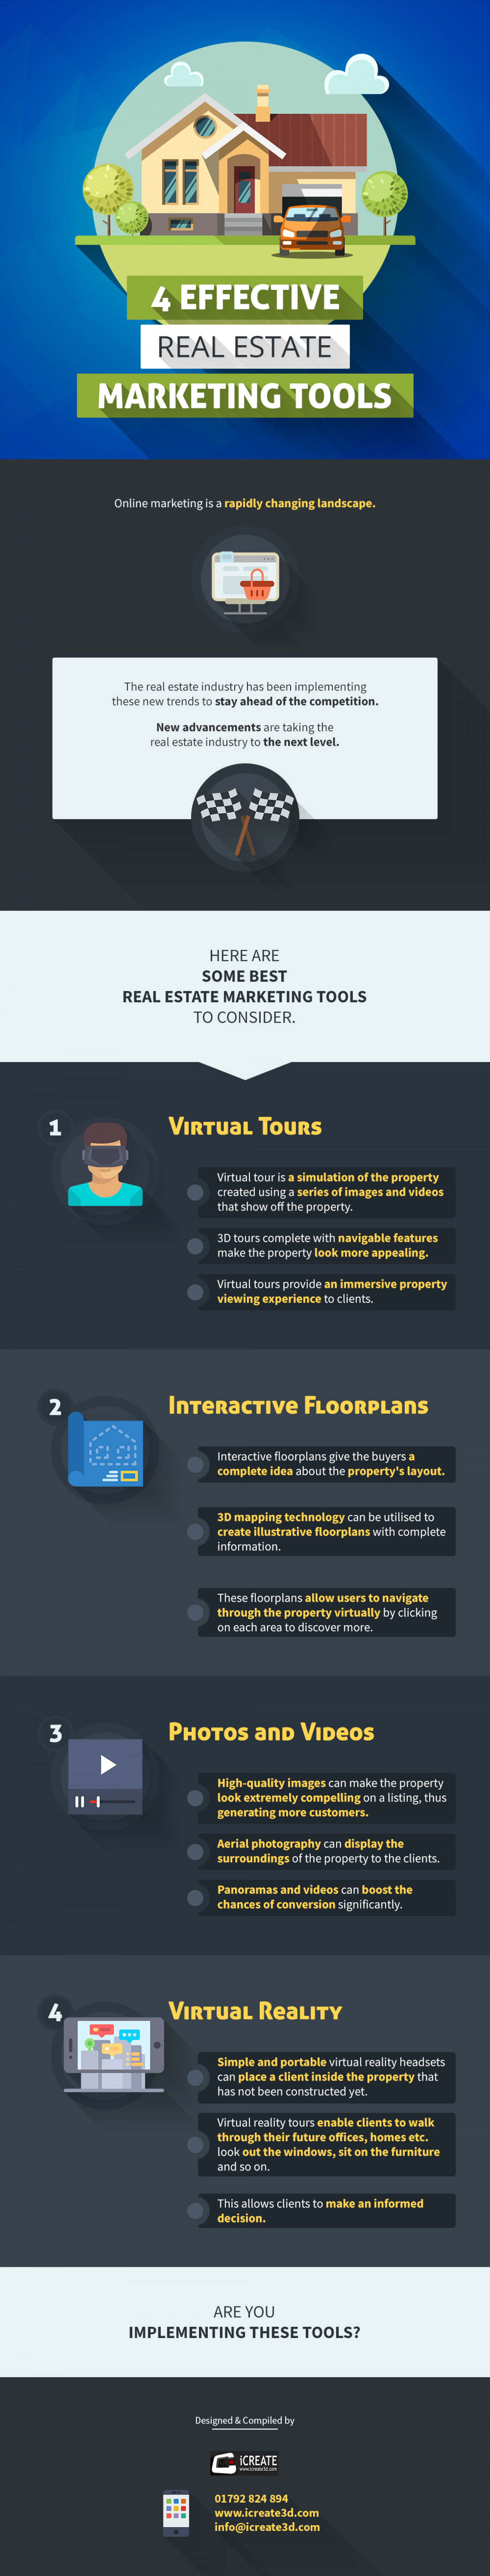 4 Effective Real Estate Marketing Tools Infographic